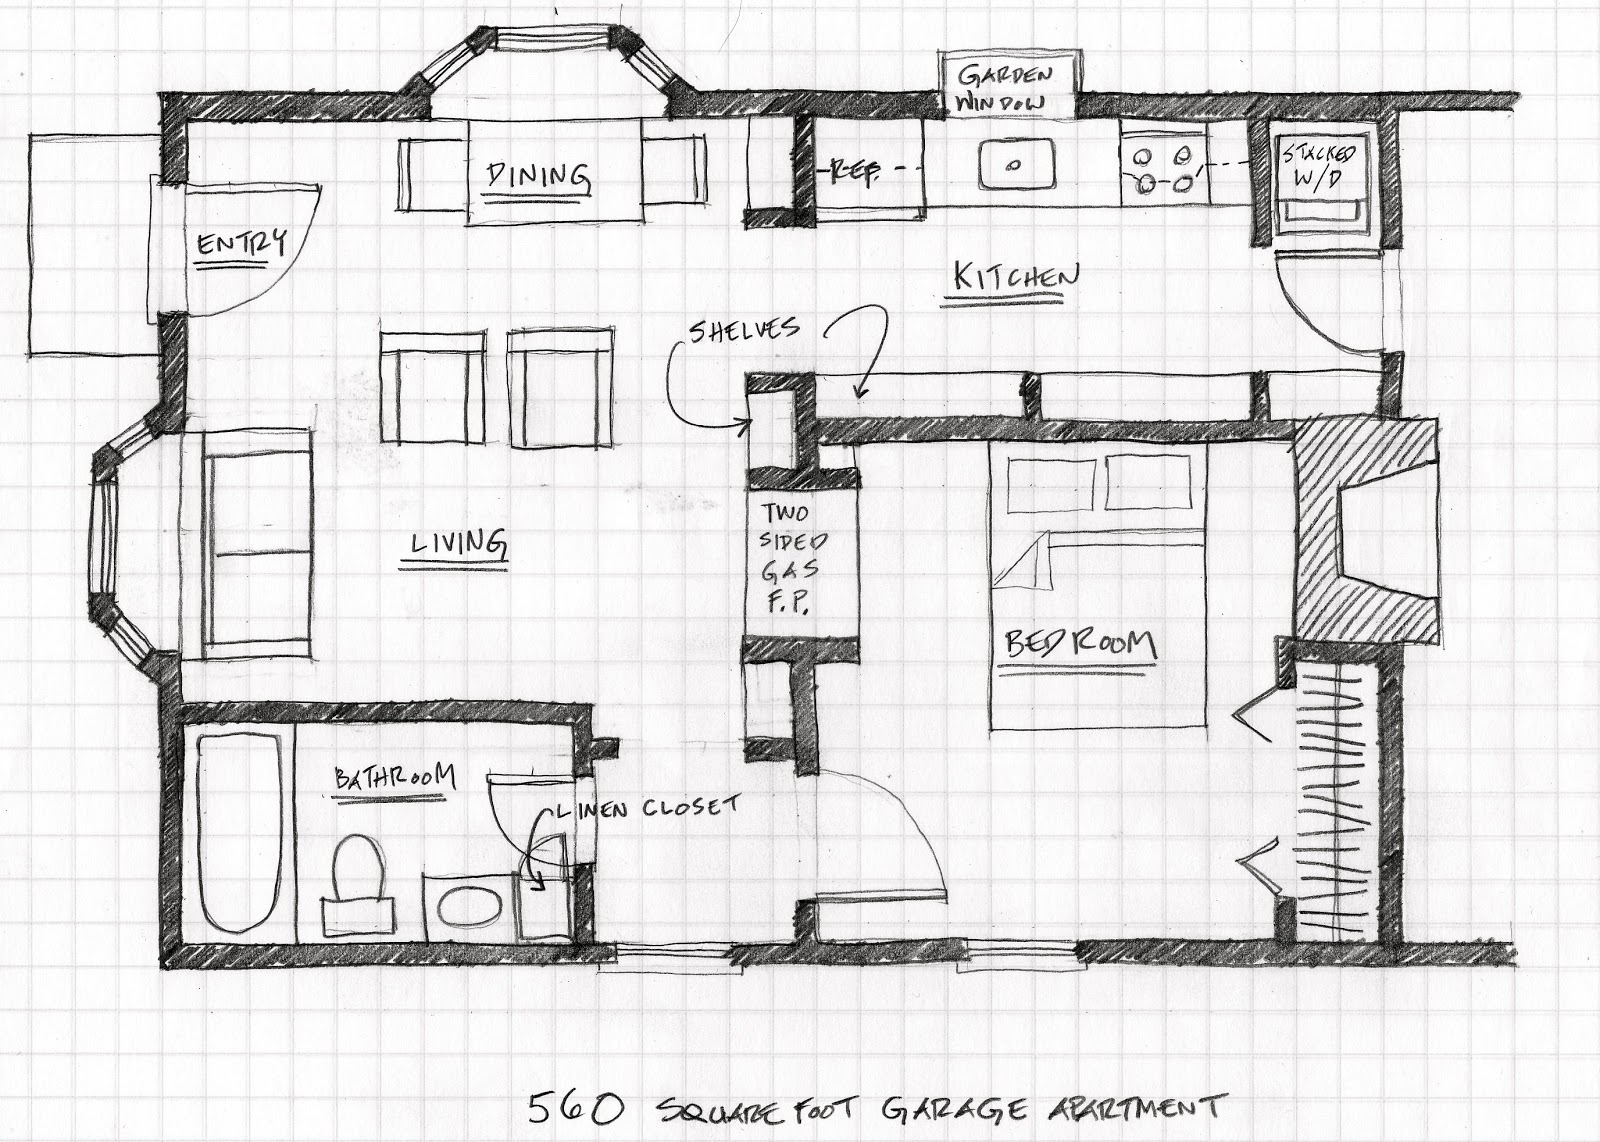 Small scale homes floor plans for garage to apartment for Small house floor plans with garage